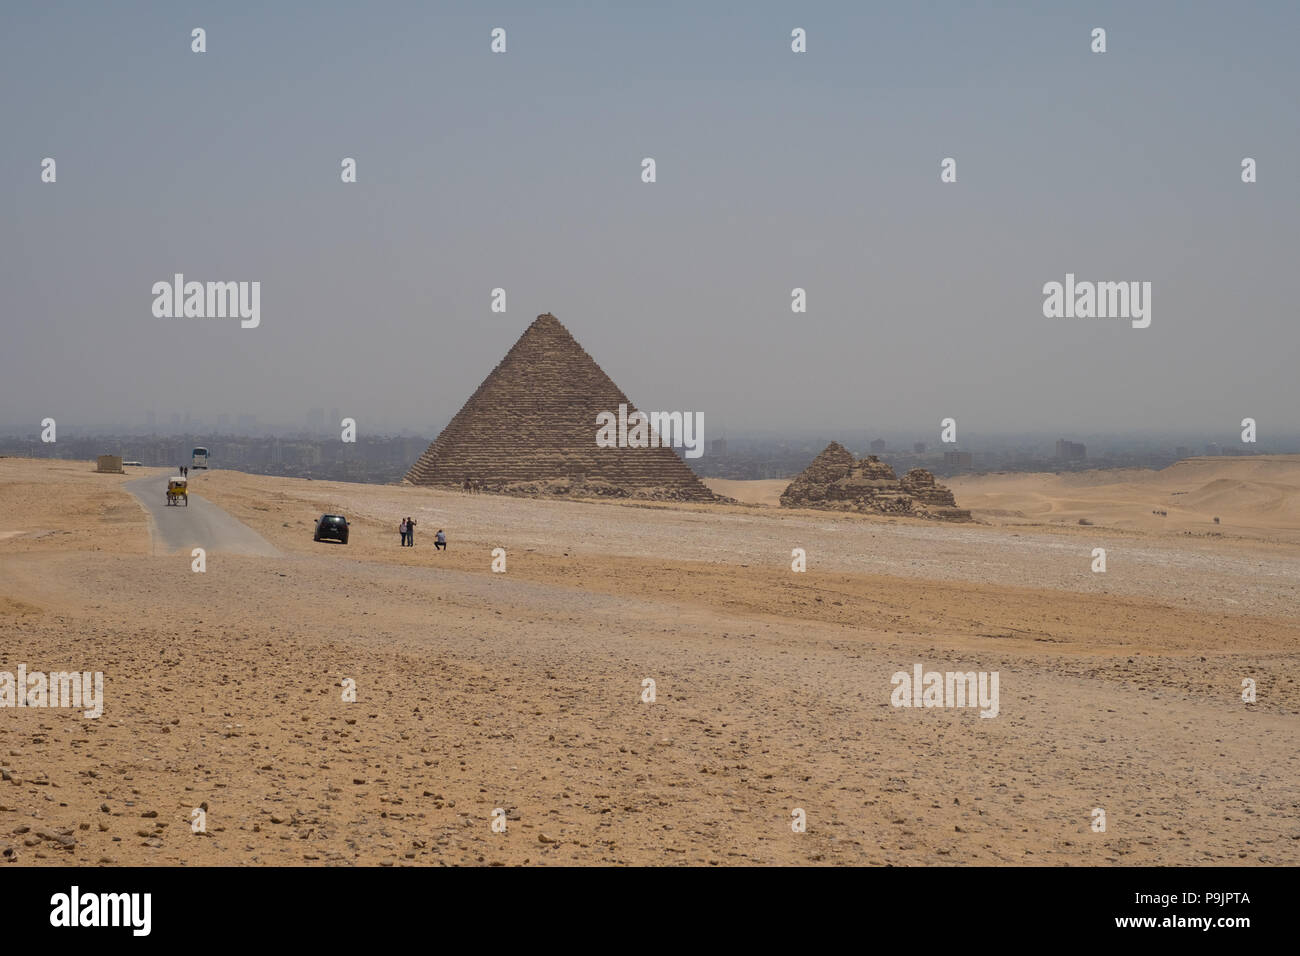 Pyramid of Menkaure, Giza, Egypt - Stock Image